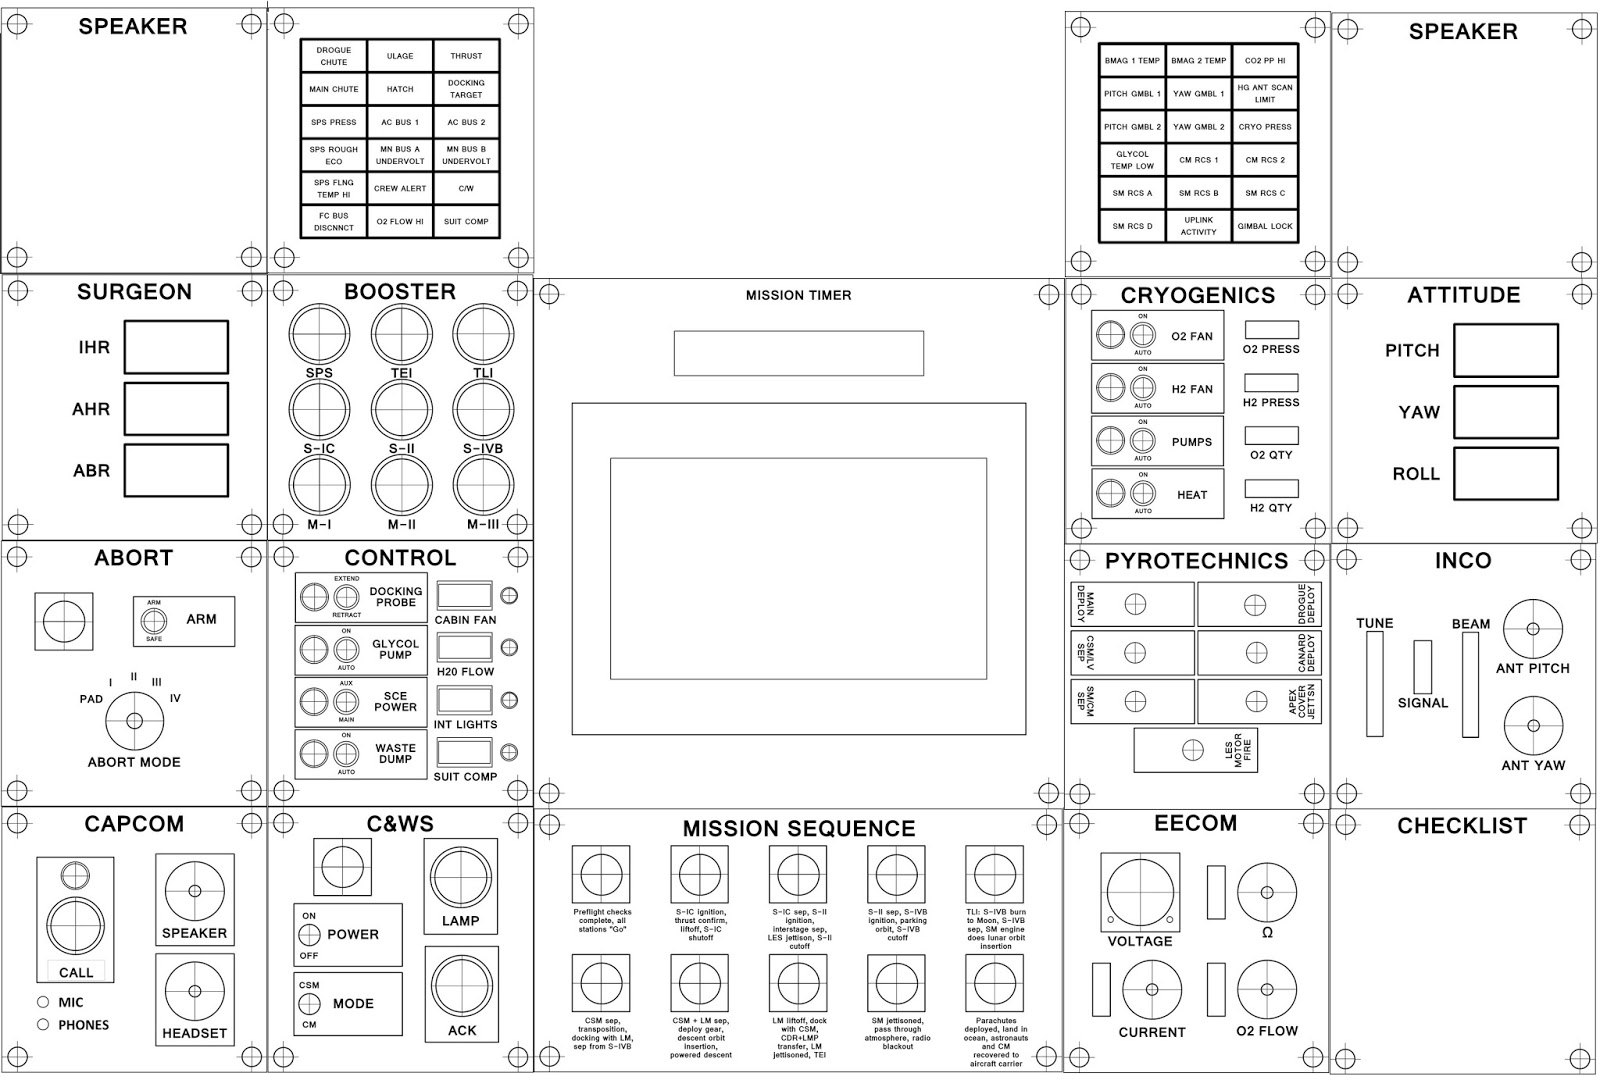 Mission Trailer Wiring Diagram : Amusing mission control wire diagram pictures best image